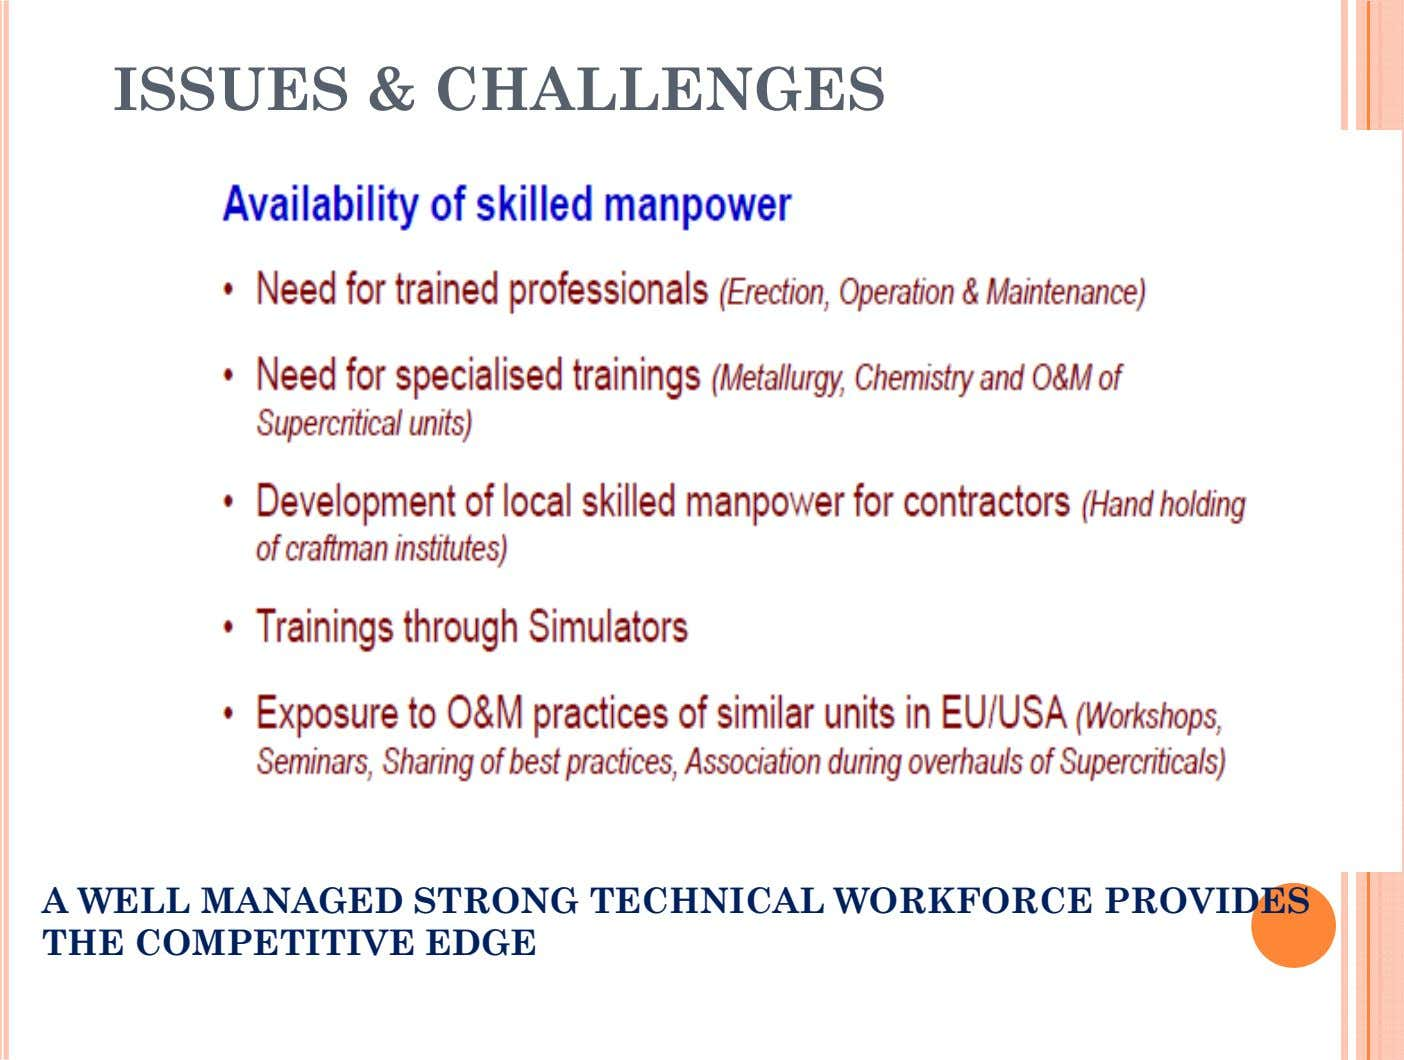 ISSUES & CHALLENGES A WELL MANAGED STRONG TECHNICAL WORKFORCE PROVIDES THE COMPETITIVE EDGE